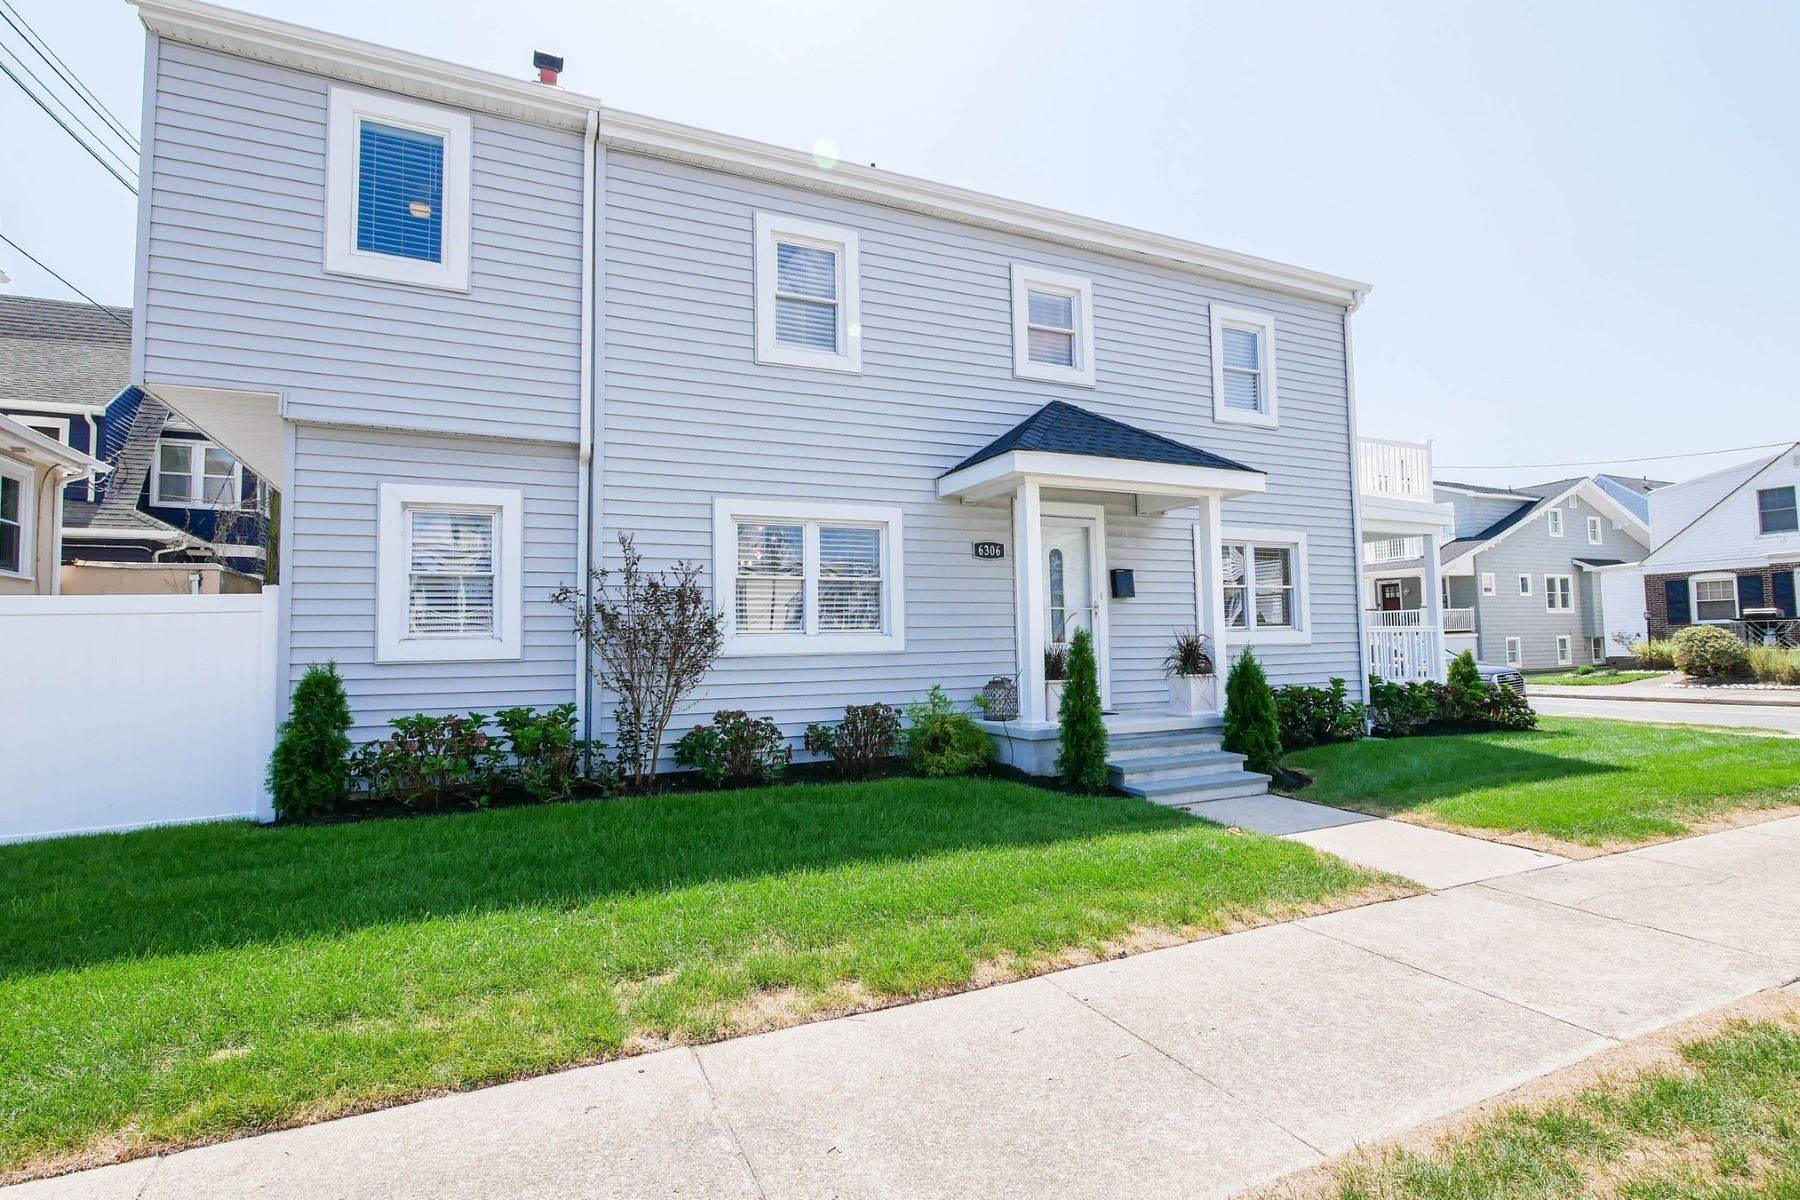 Single Family Homes for Sale at 101 S Portland 101 S. Portland Ave Ventnor, New Jersey 08406 United States